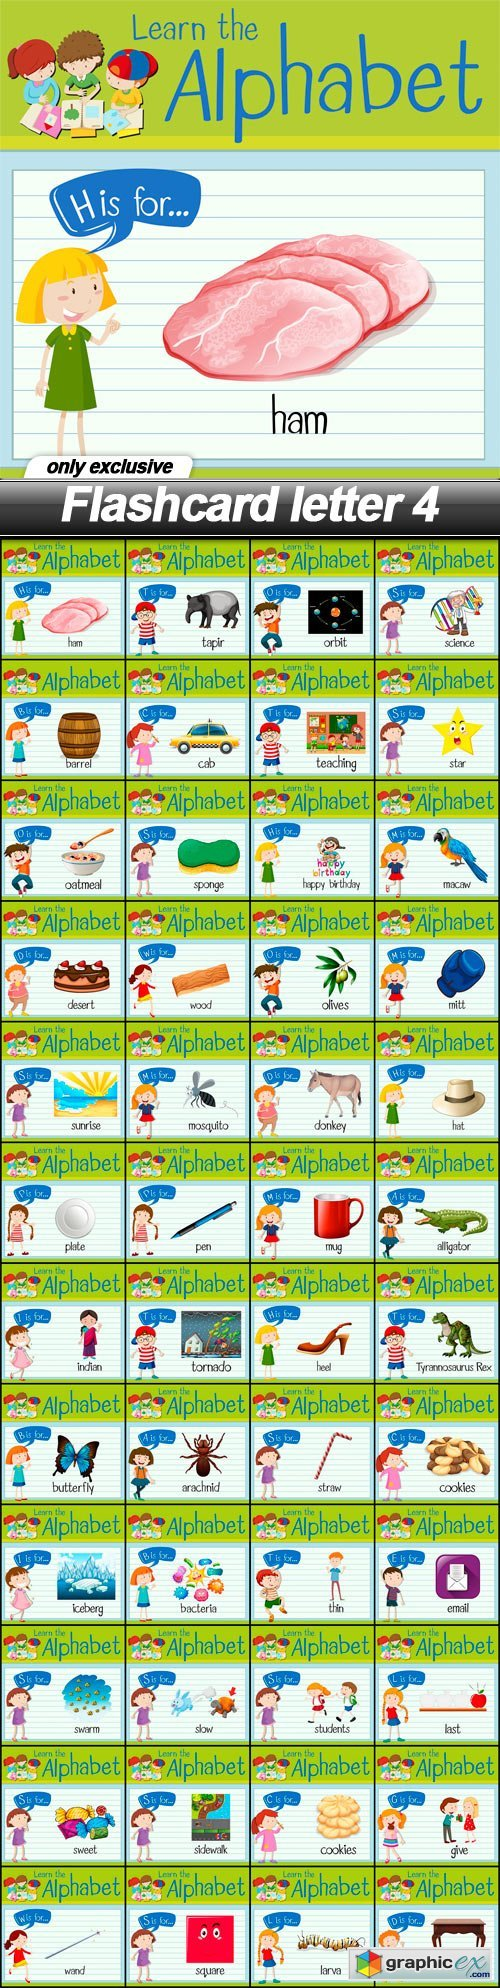 Flashcard letter 4 - 48 EPS